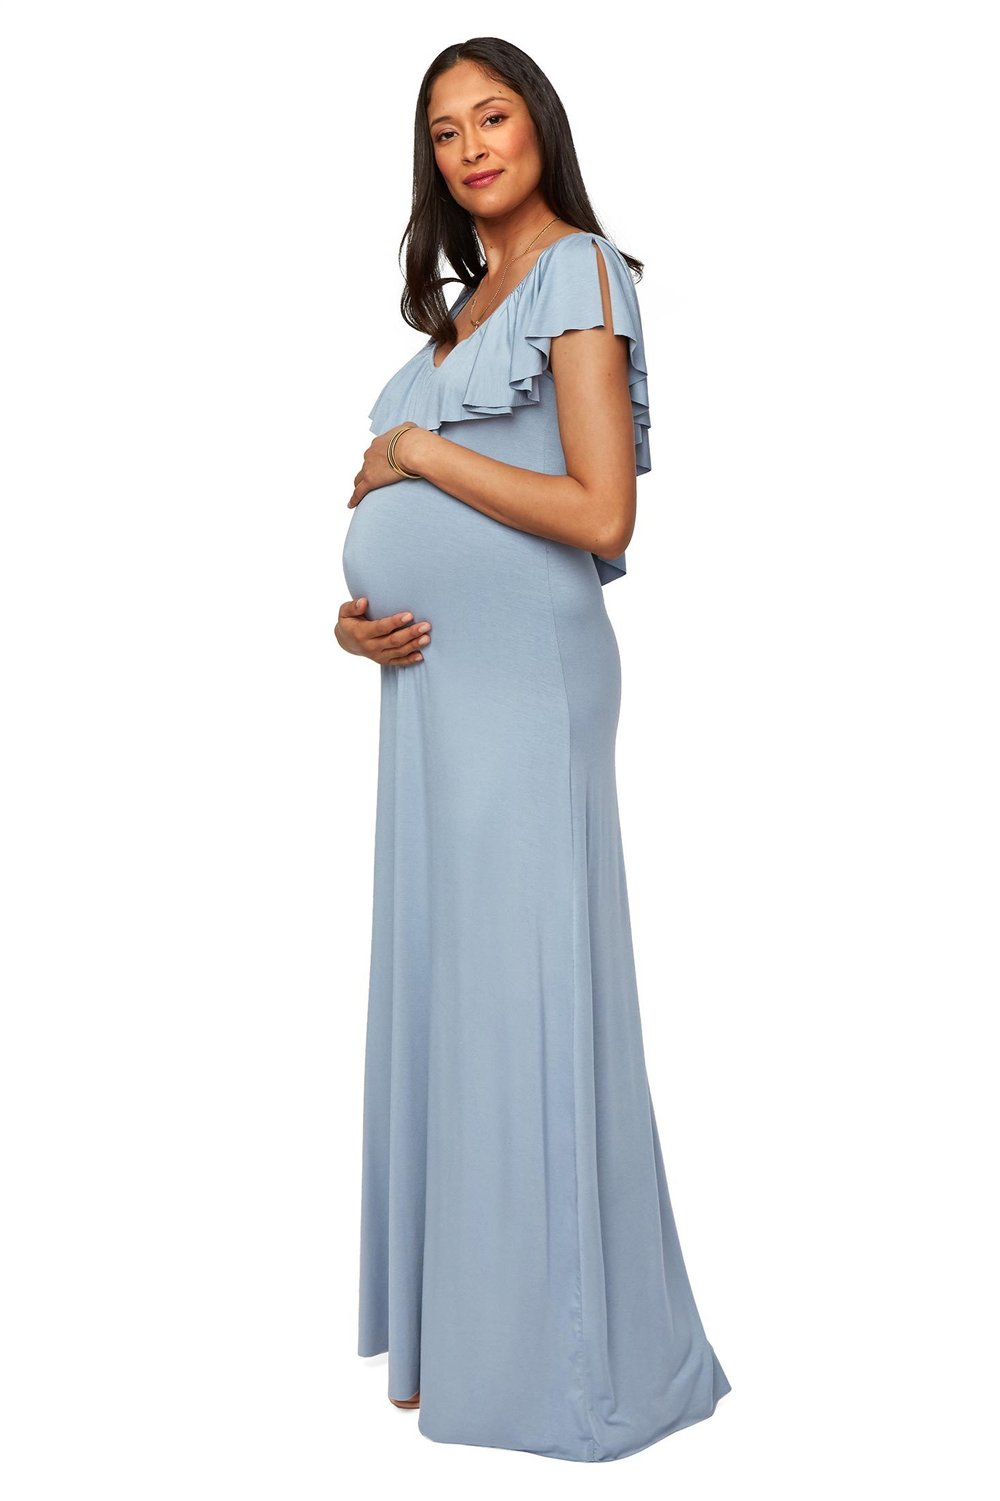 Dress your baby bump 10 online stores for the stylish mama to be rachel pally loren dress bay maternity ombrellifo Image collections